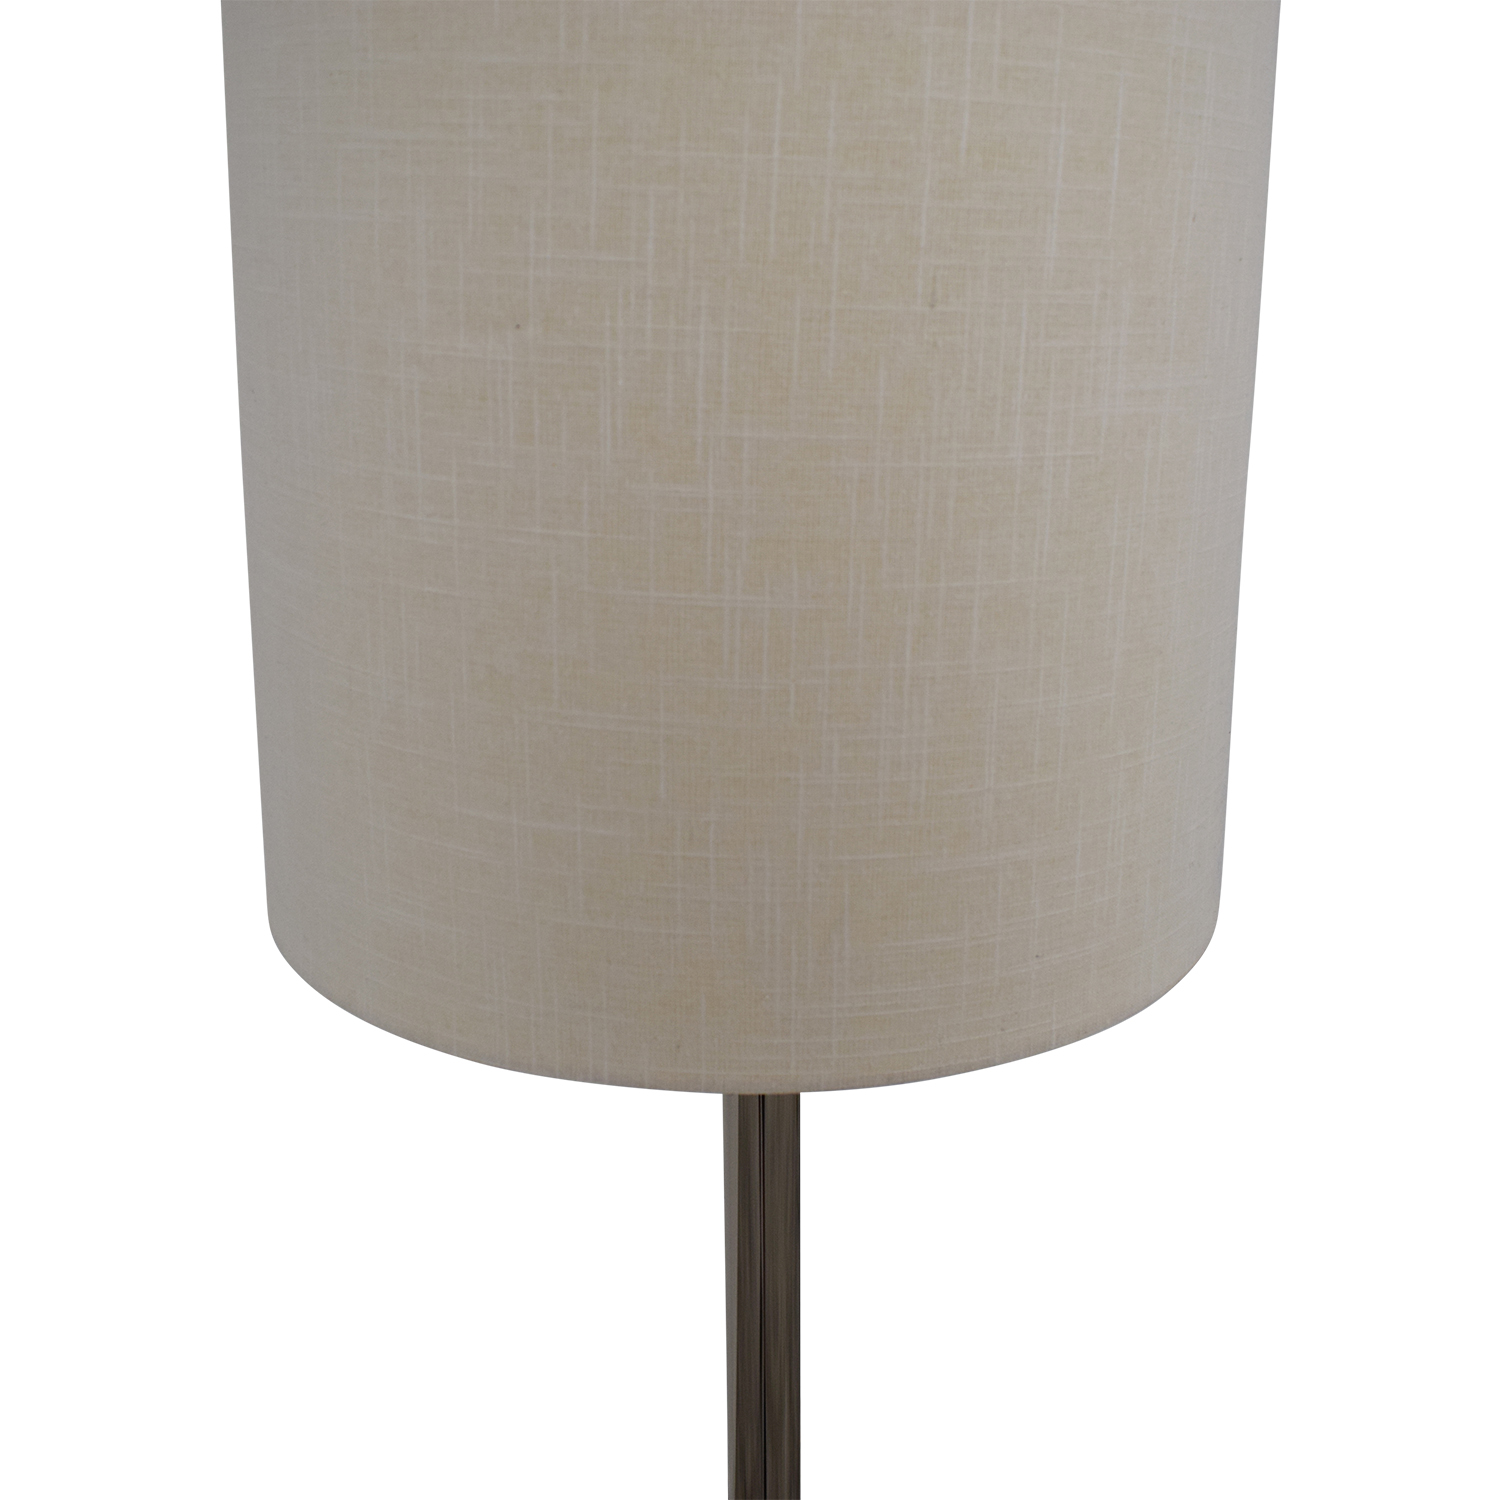 buy Crate & Barrel Crate & Barrel Claire Floor Lamp online